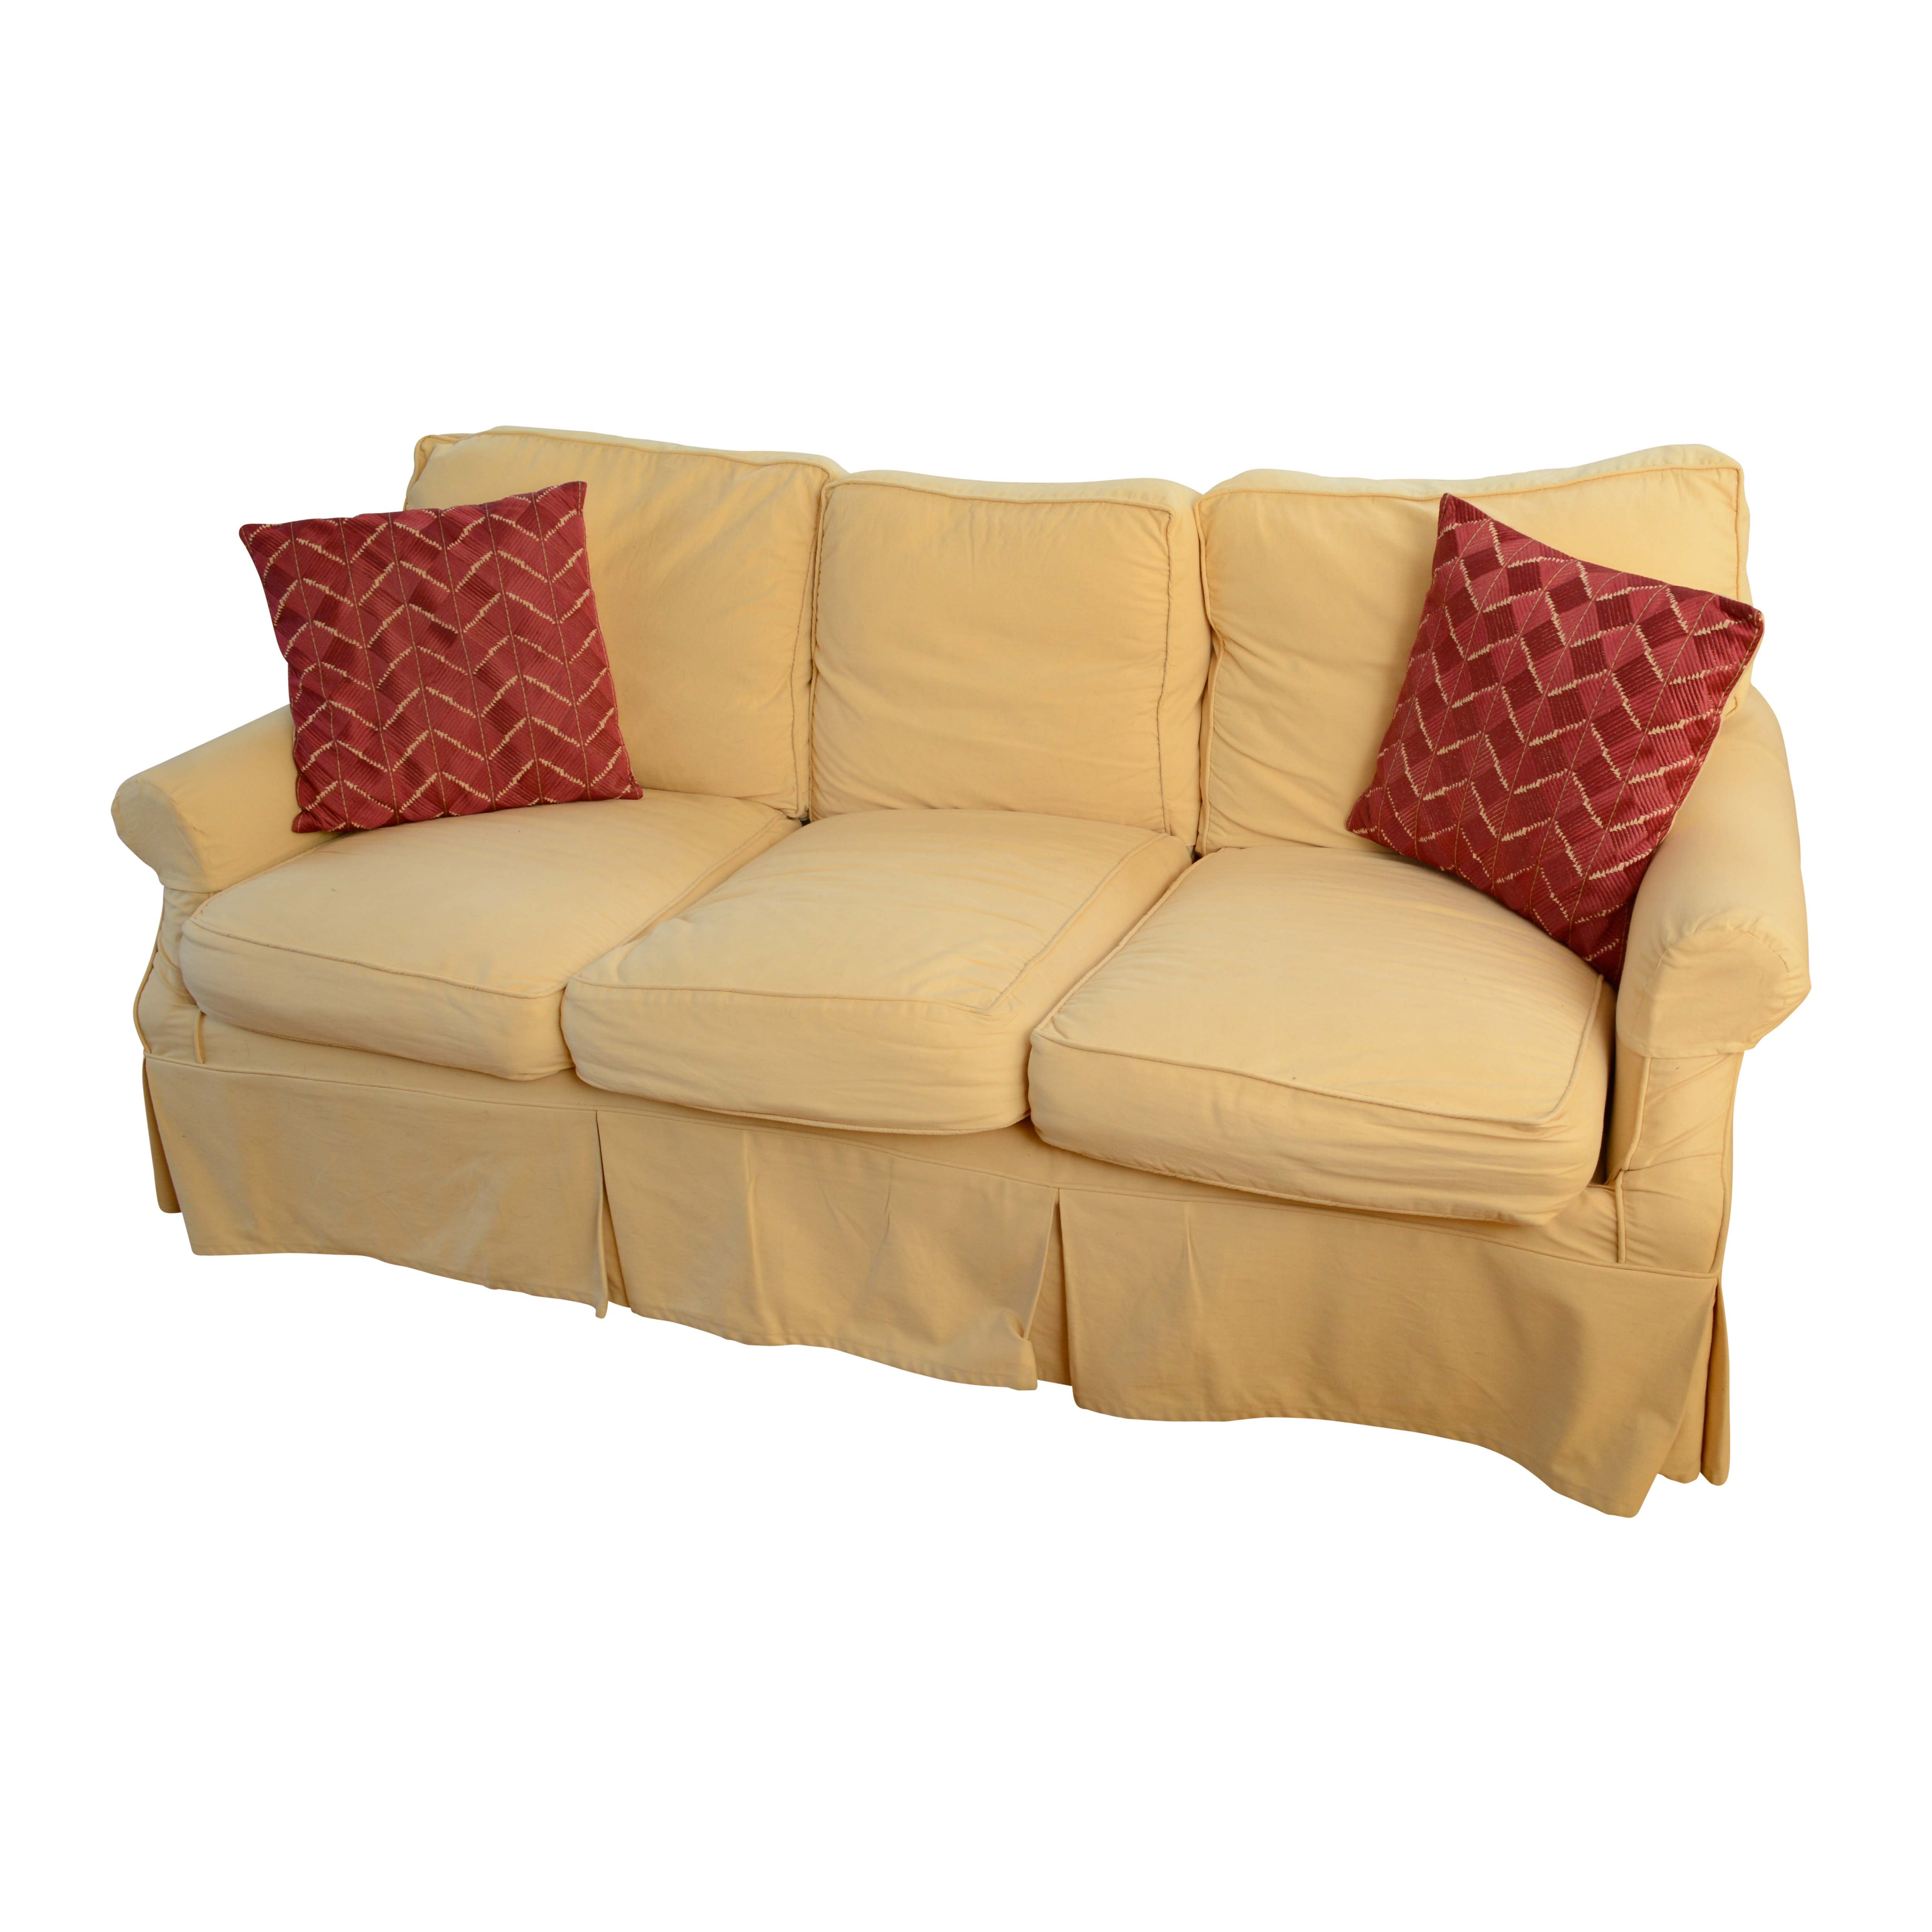 Slip-Covered Sofa by Laura Ashley Home